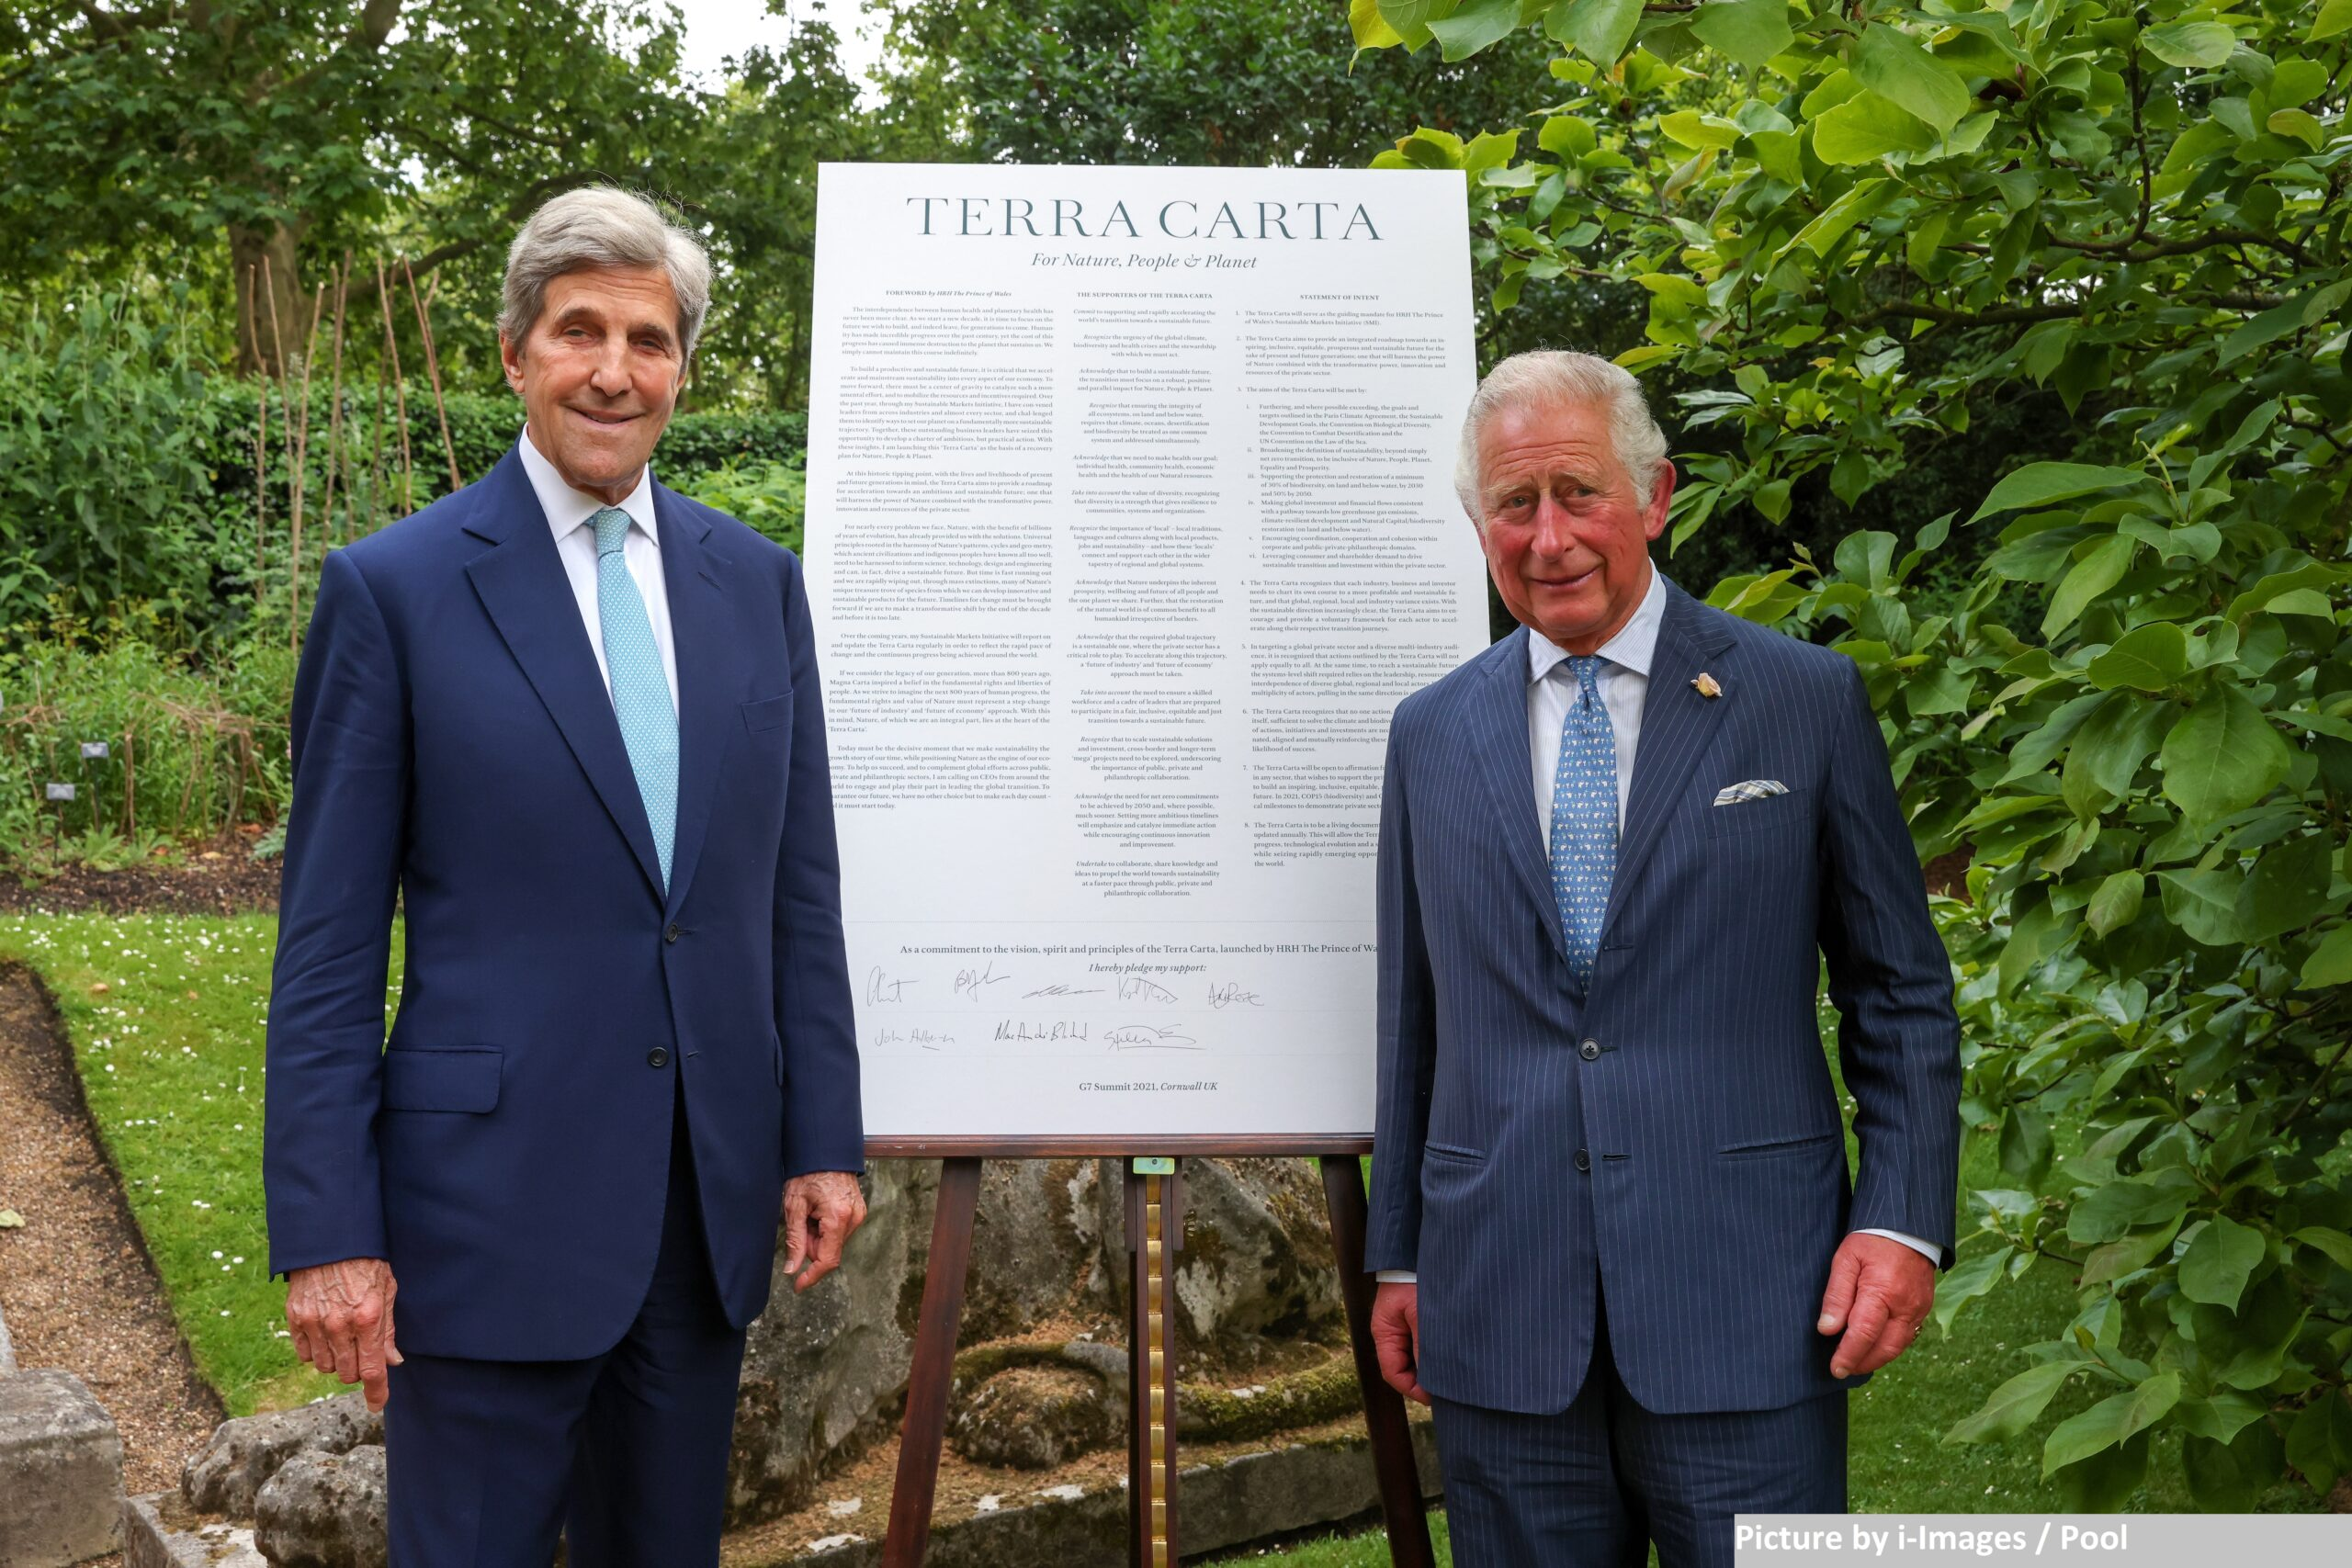 The Prince of Wales puts spotlight on the environment on eve of G7 summit